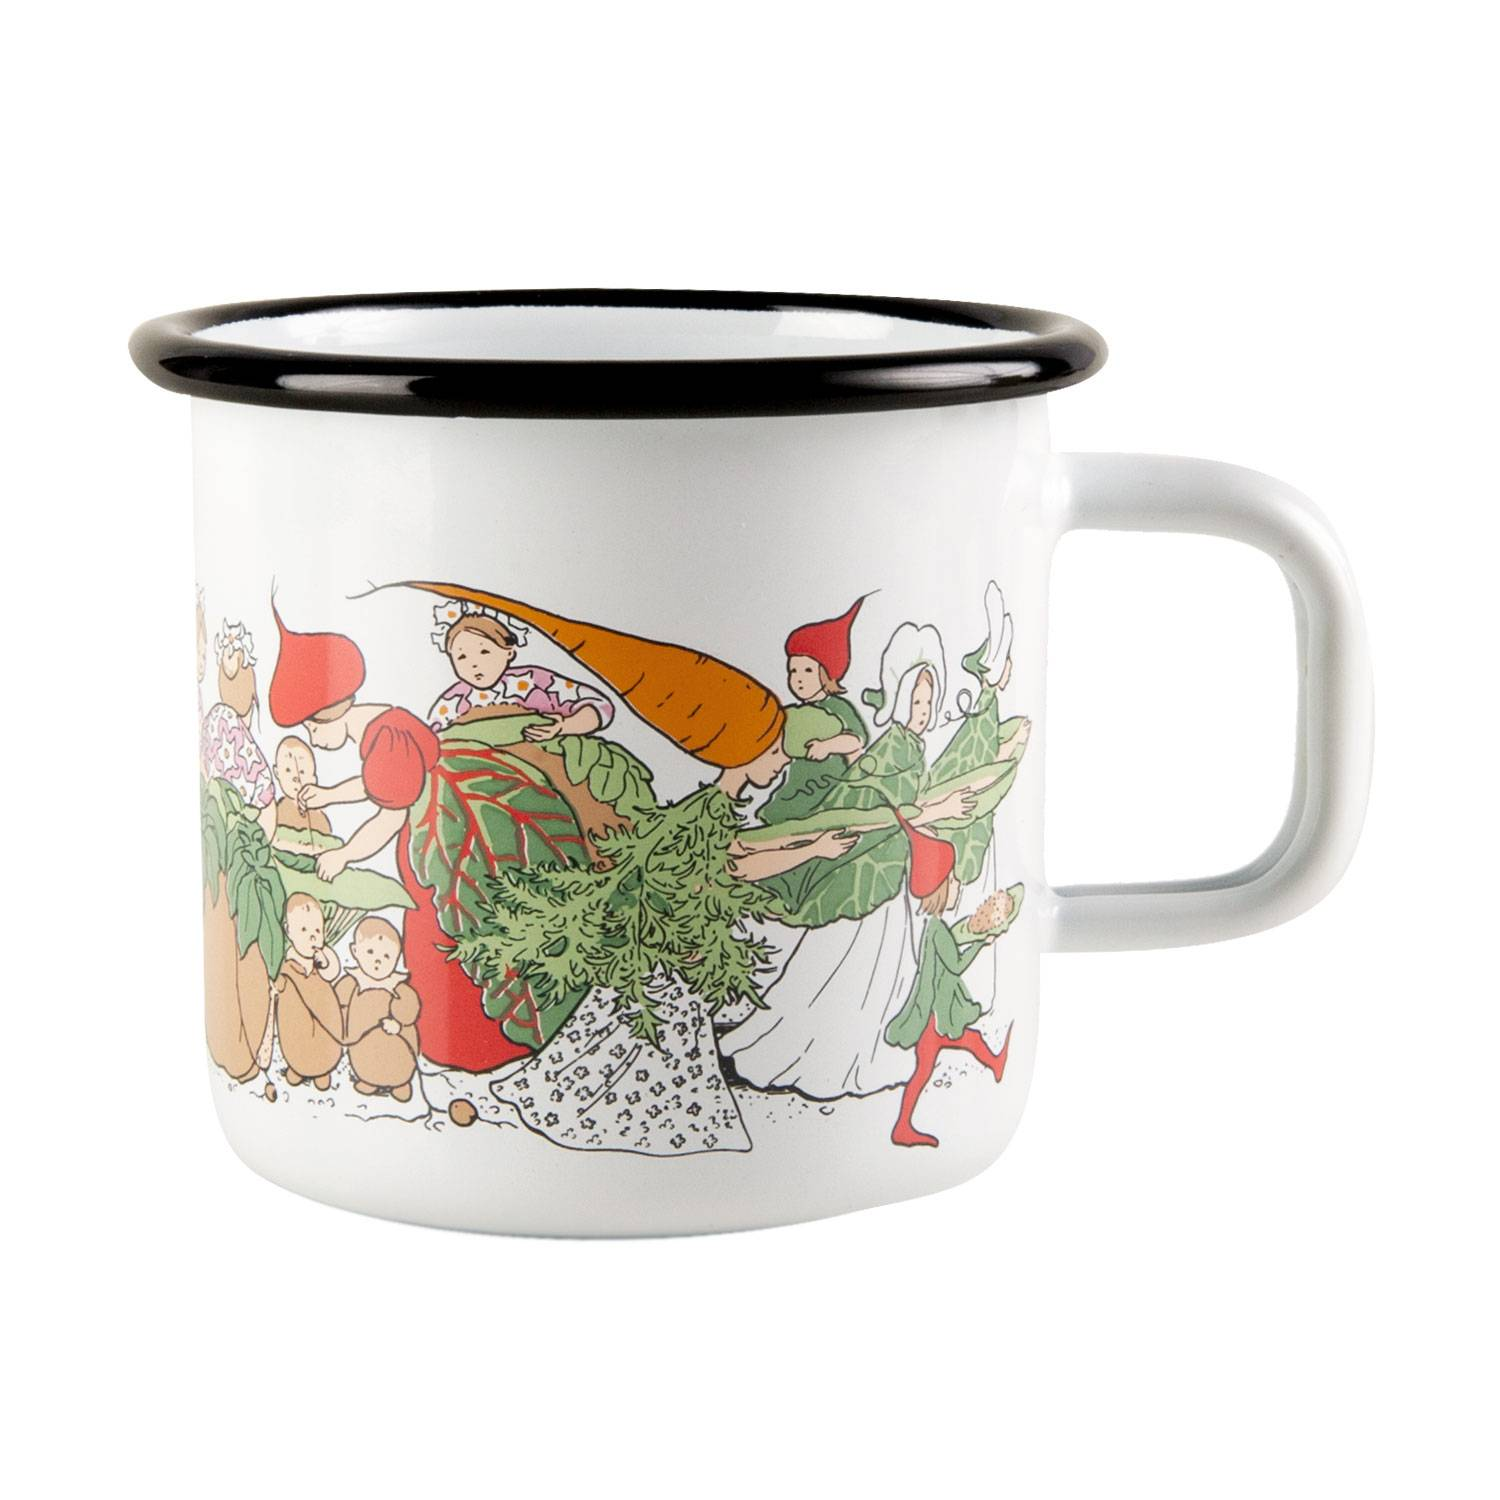 Muurla Elsa Beskow Vegetable Garden Muki 37cl